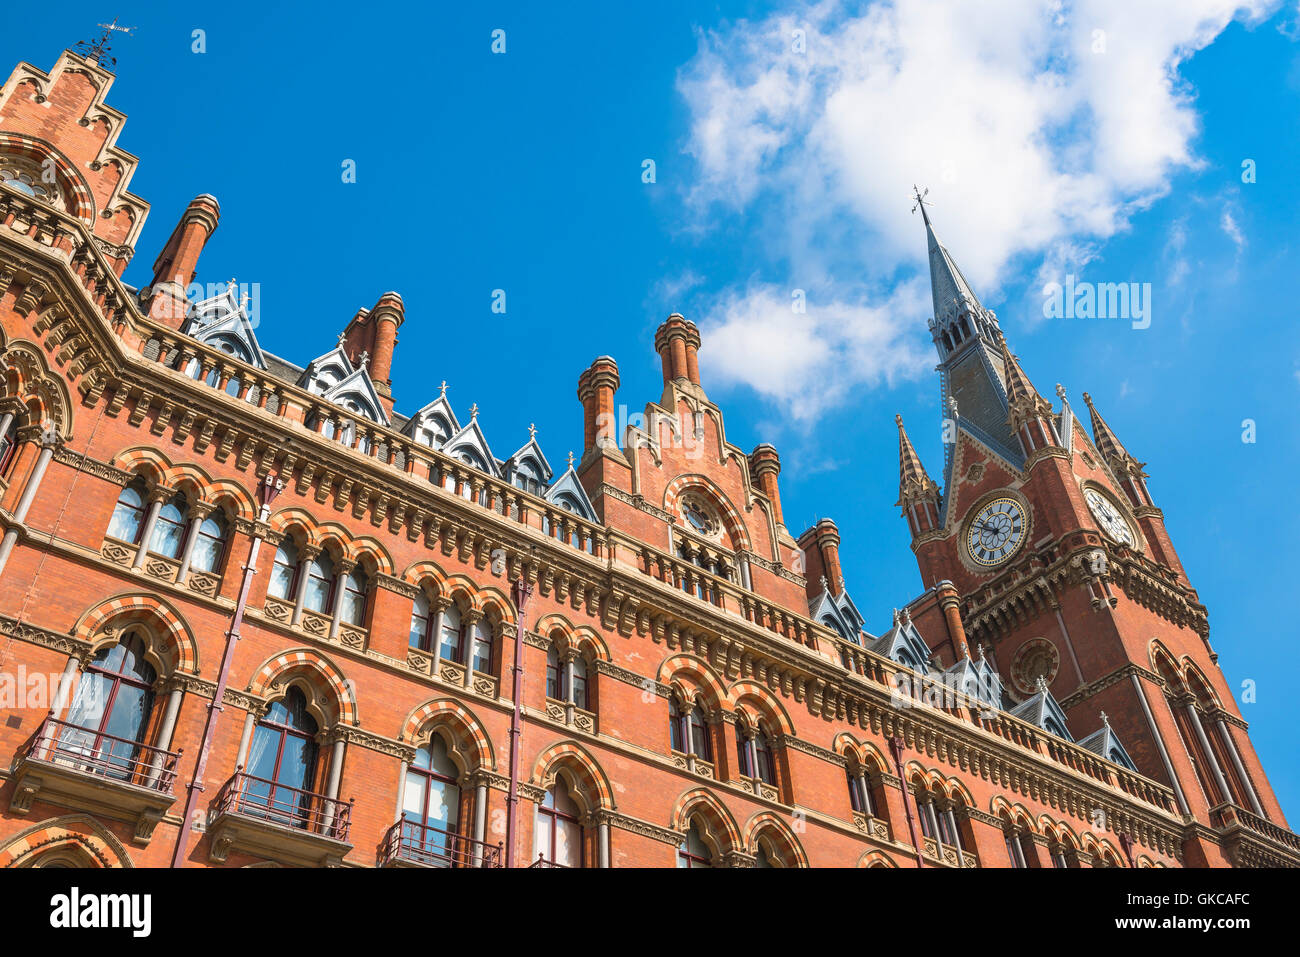 Victorian architecture, London, detail of the Victorian Gothic style St Pancras Hotel at King's Cross, London,UK. Stock Photo